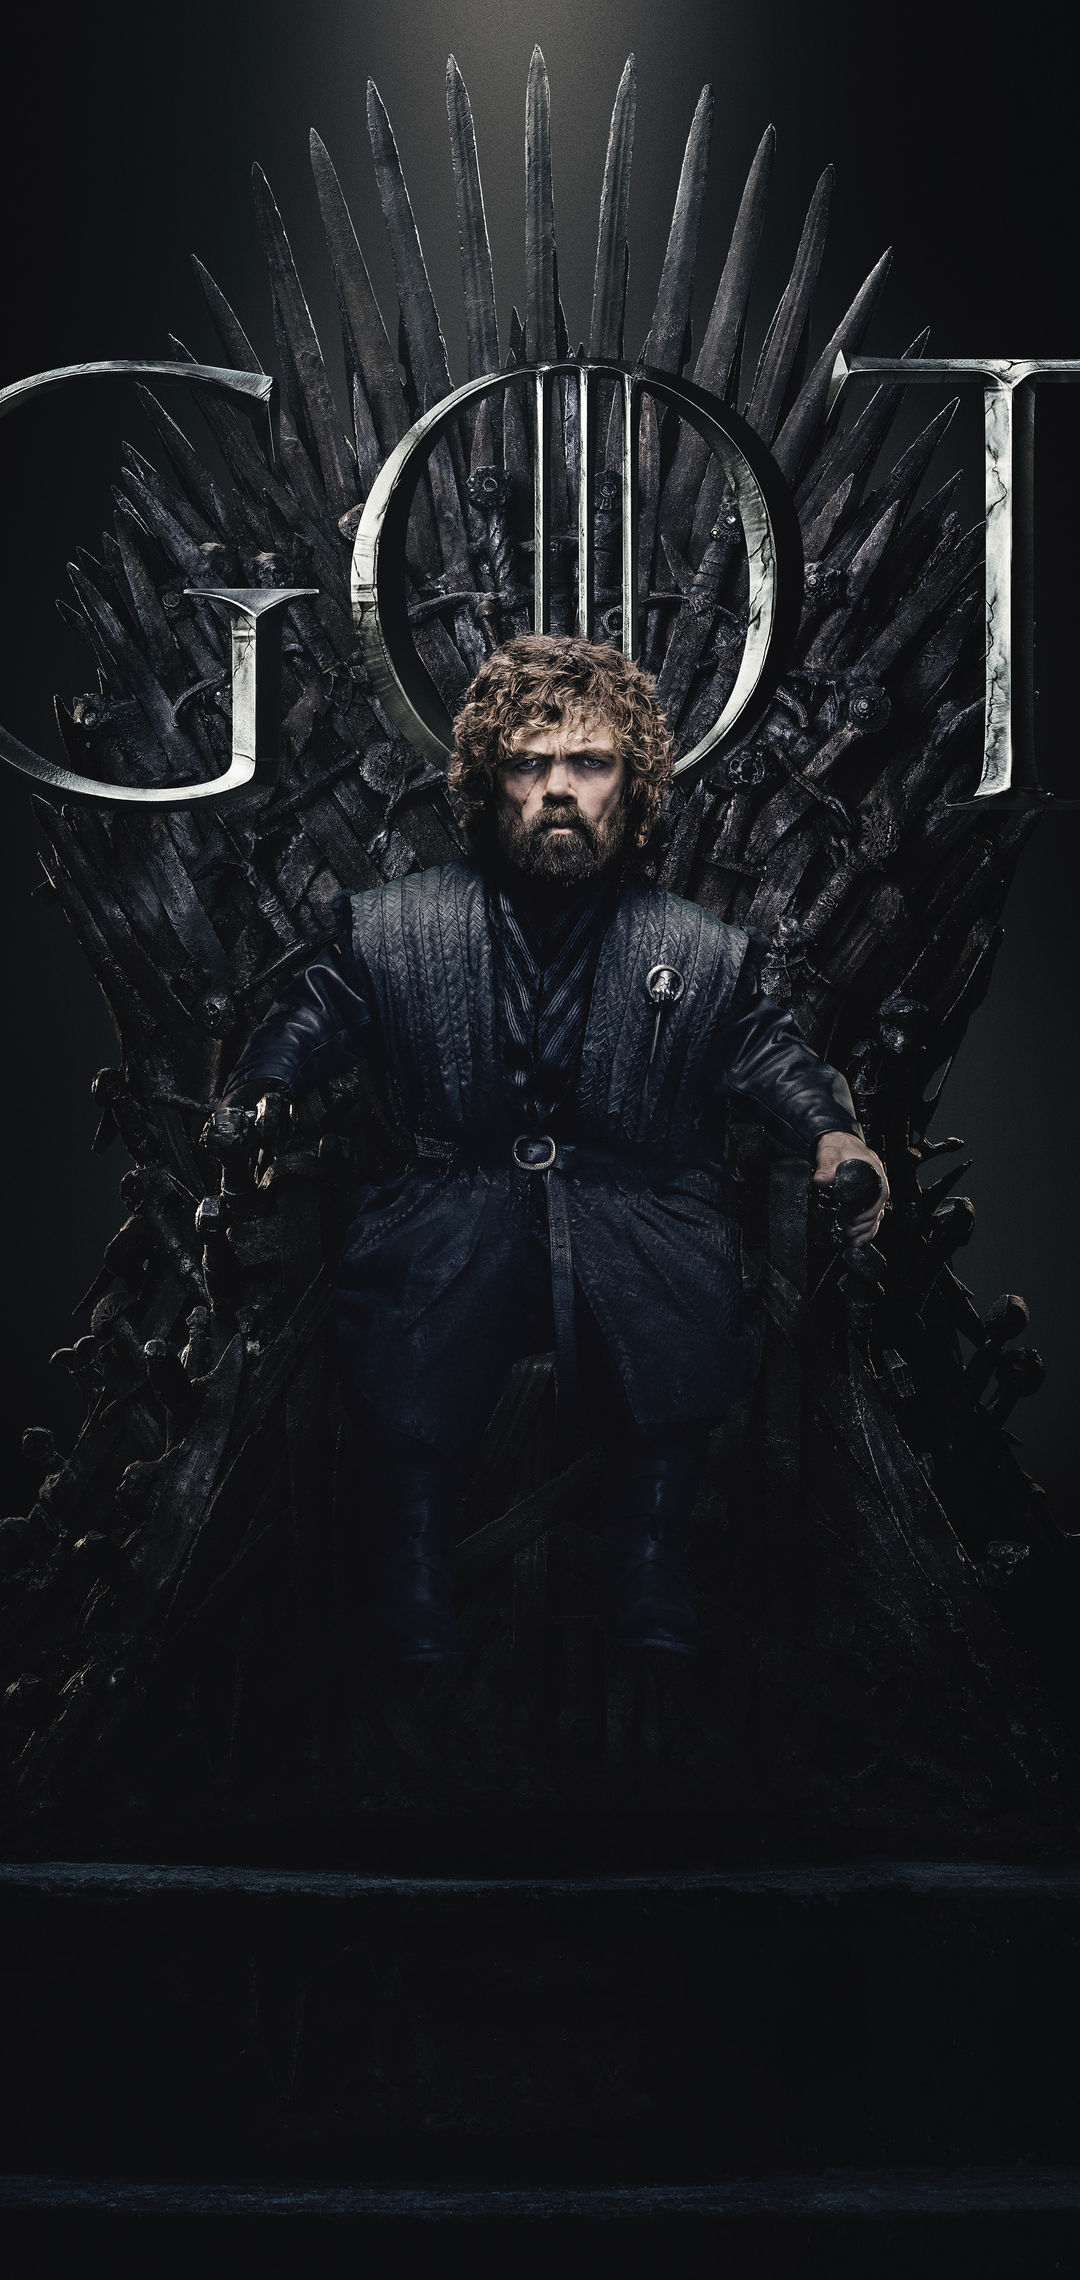 1080x2280 Tyrion Lannister Game Of Thrones Season 8 Poster ...